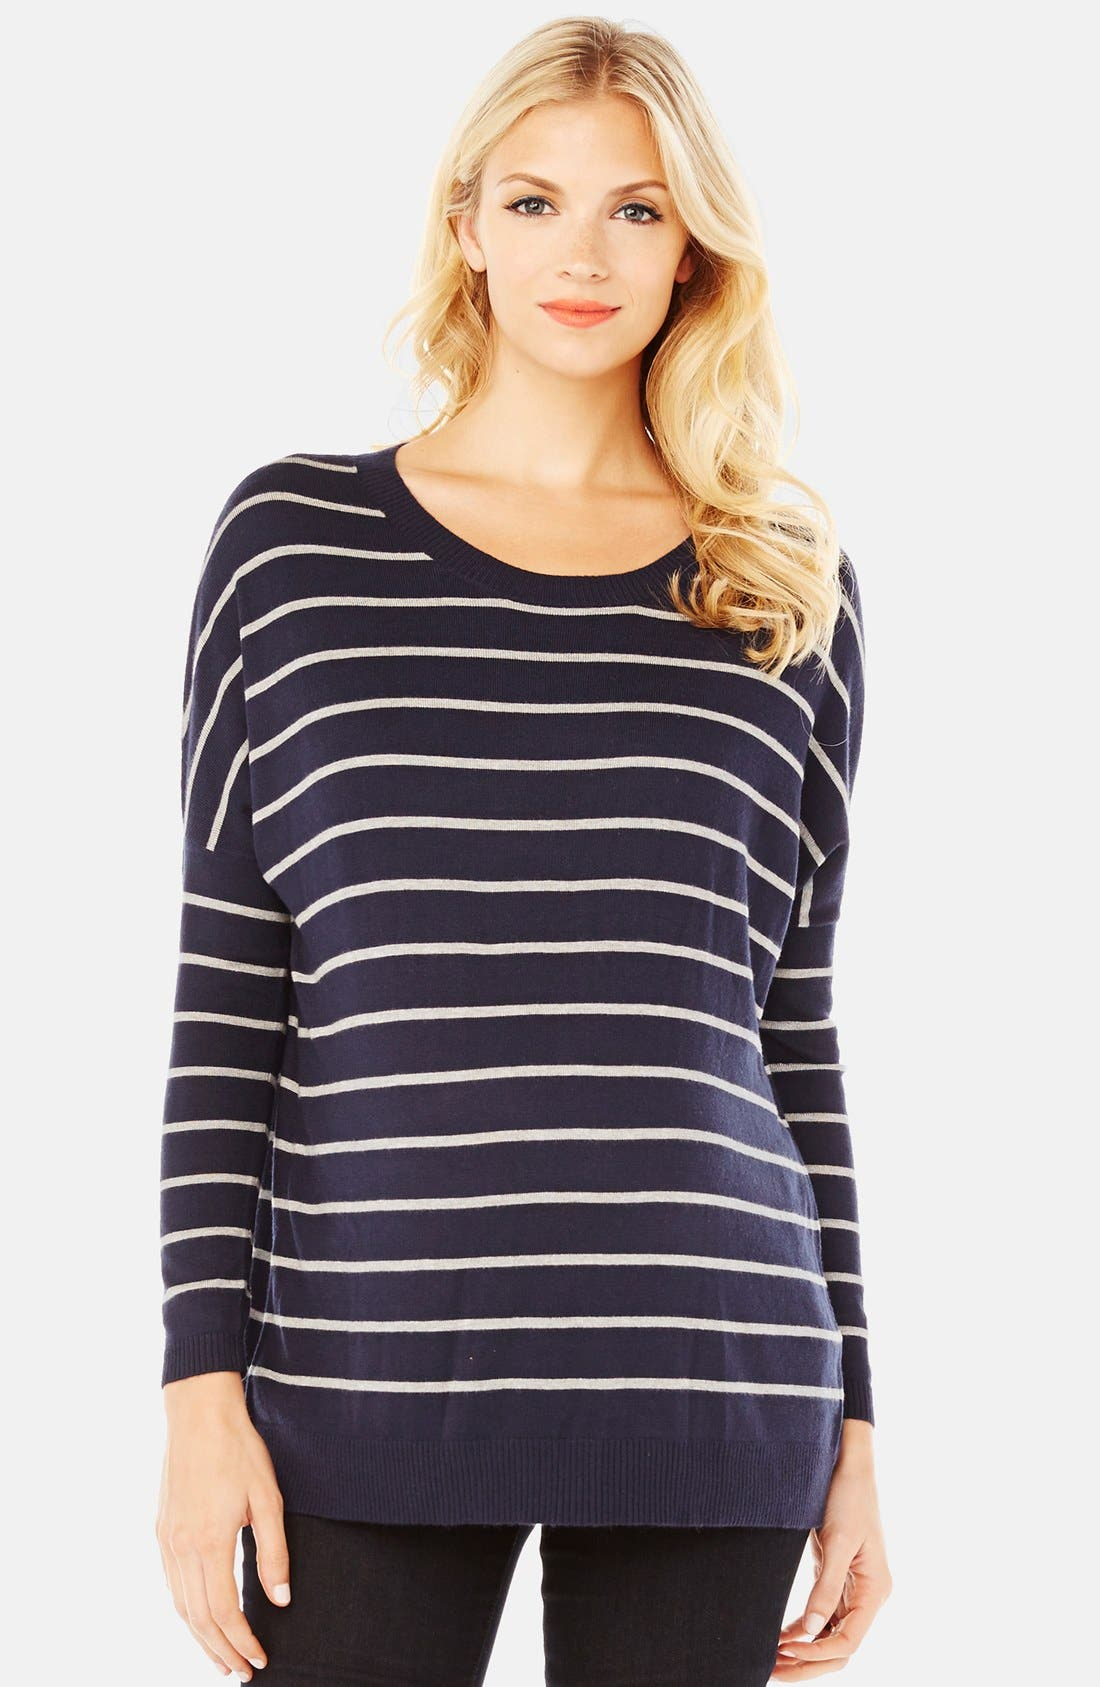 'Whitney' Maternity Sweater,                         Main,                         color, Navy/ Grey Stripe